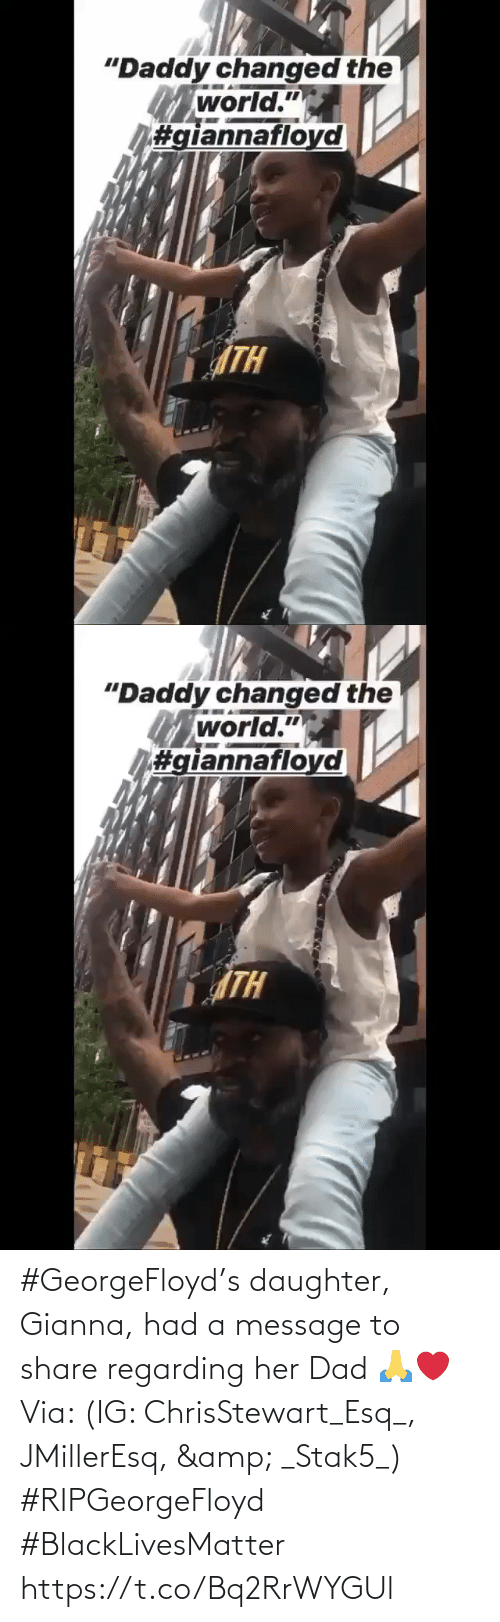 daughter: #GeorgeFloyd's daughter, Gianna, had a message to share regarding her Dad 🙏❤️ Via: (IG: ChrisStewart_Esq_, JMillerEsq, & _Stak5_) #RIPGeorgeFloyd #BlackLivesMatter https://t.co/Bq2RrWYGUl